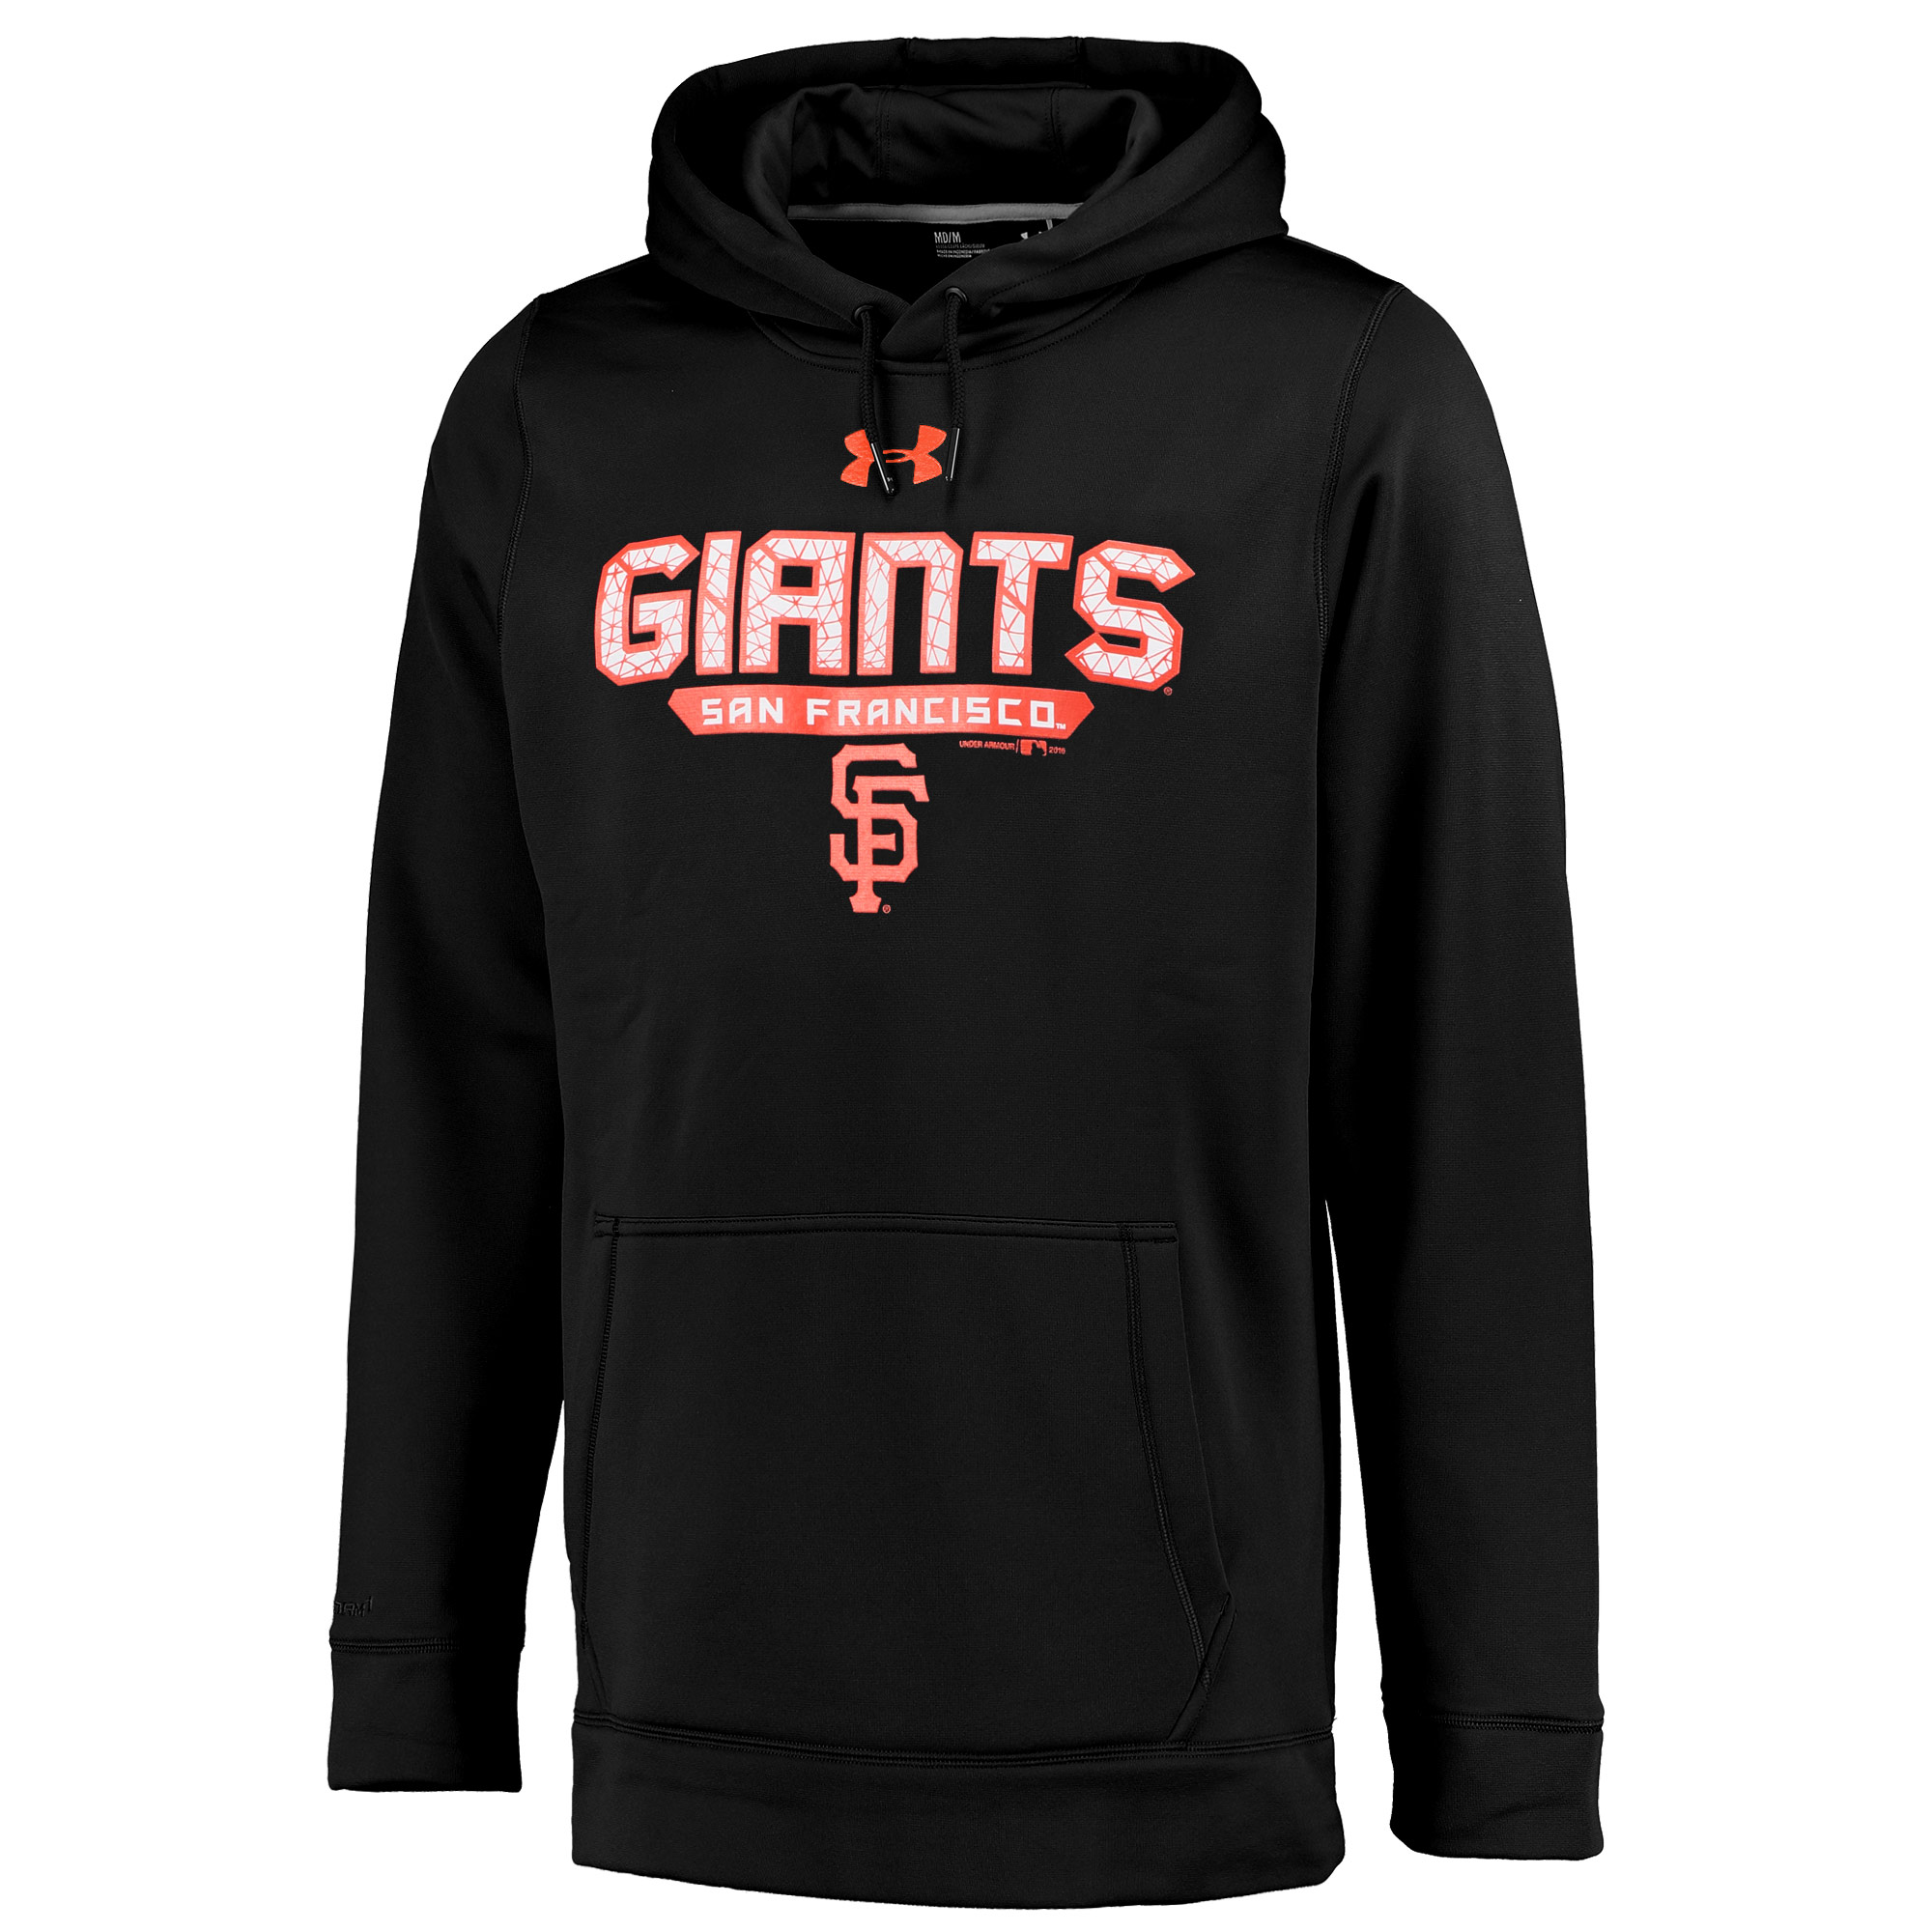 San Francisco Giants Under Armour Pullover Hoodie - Black